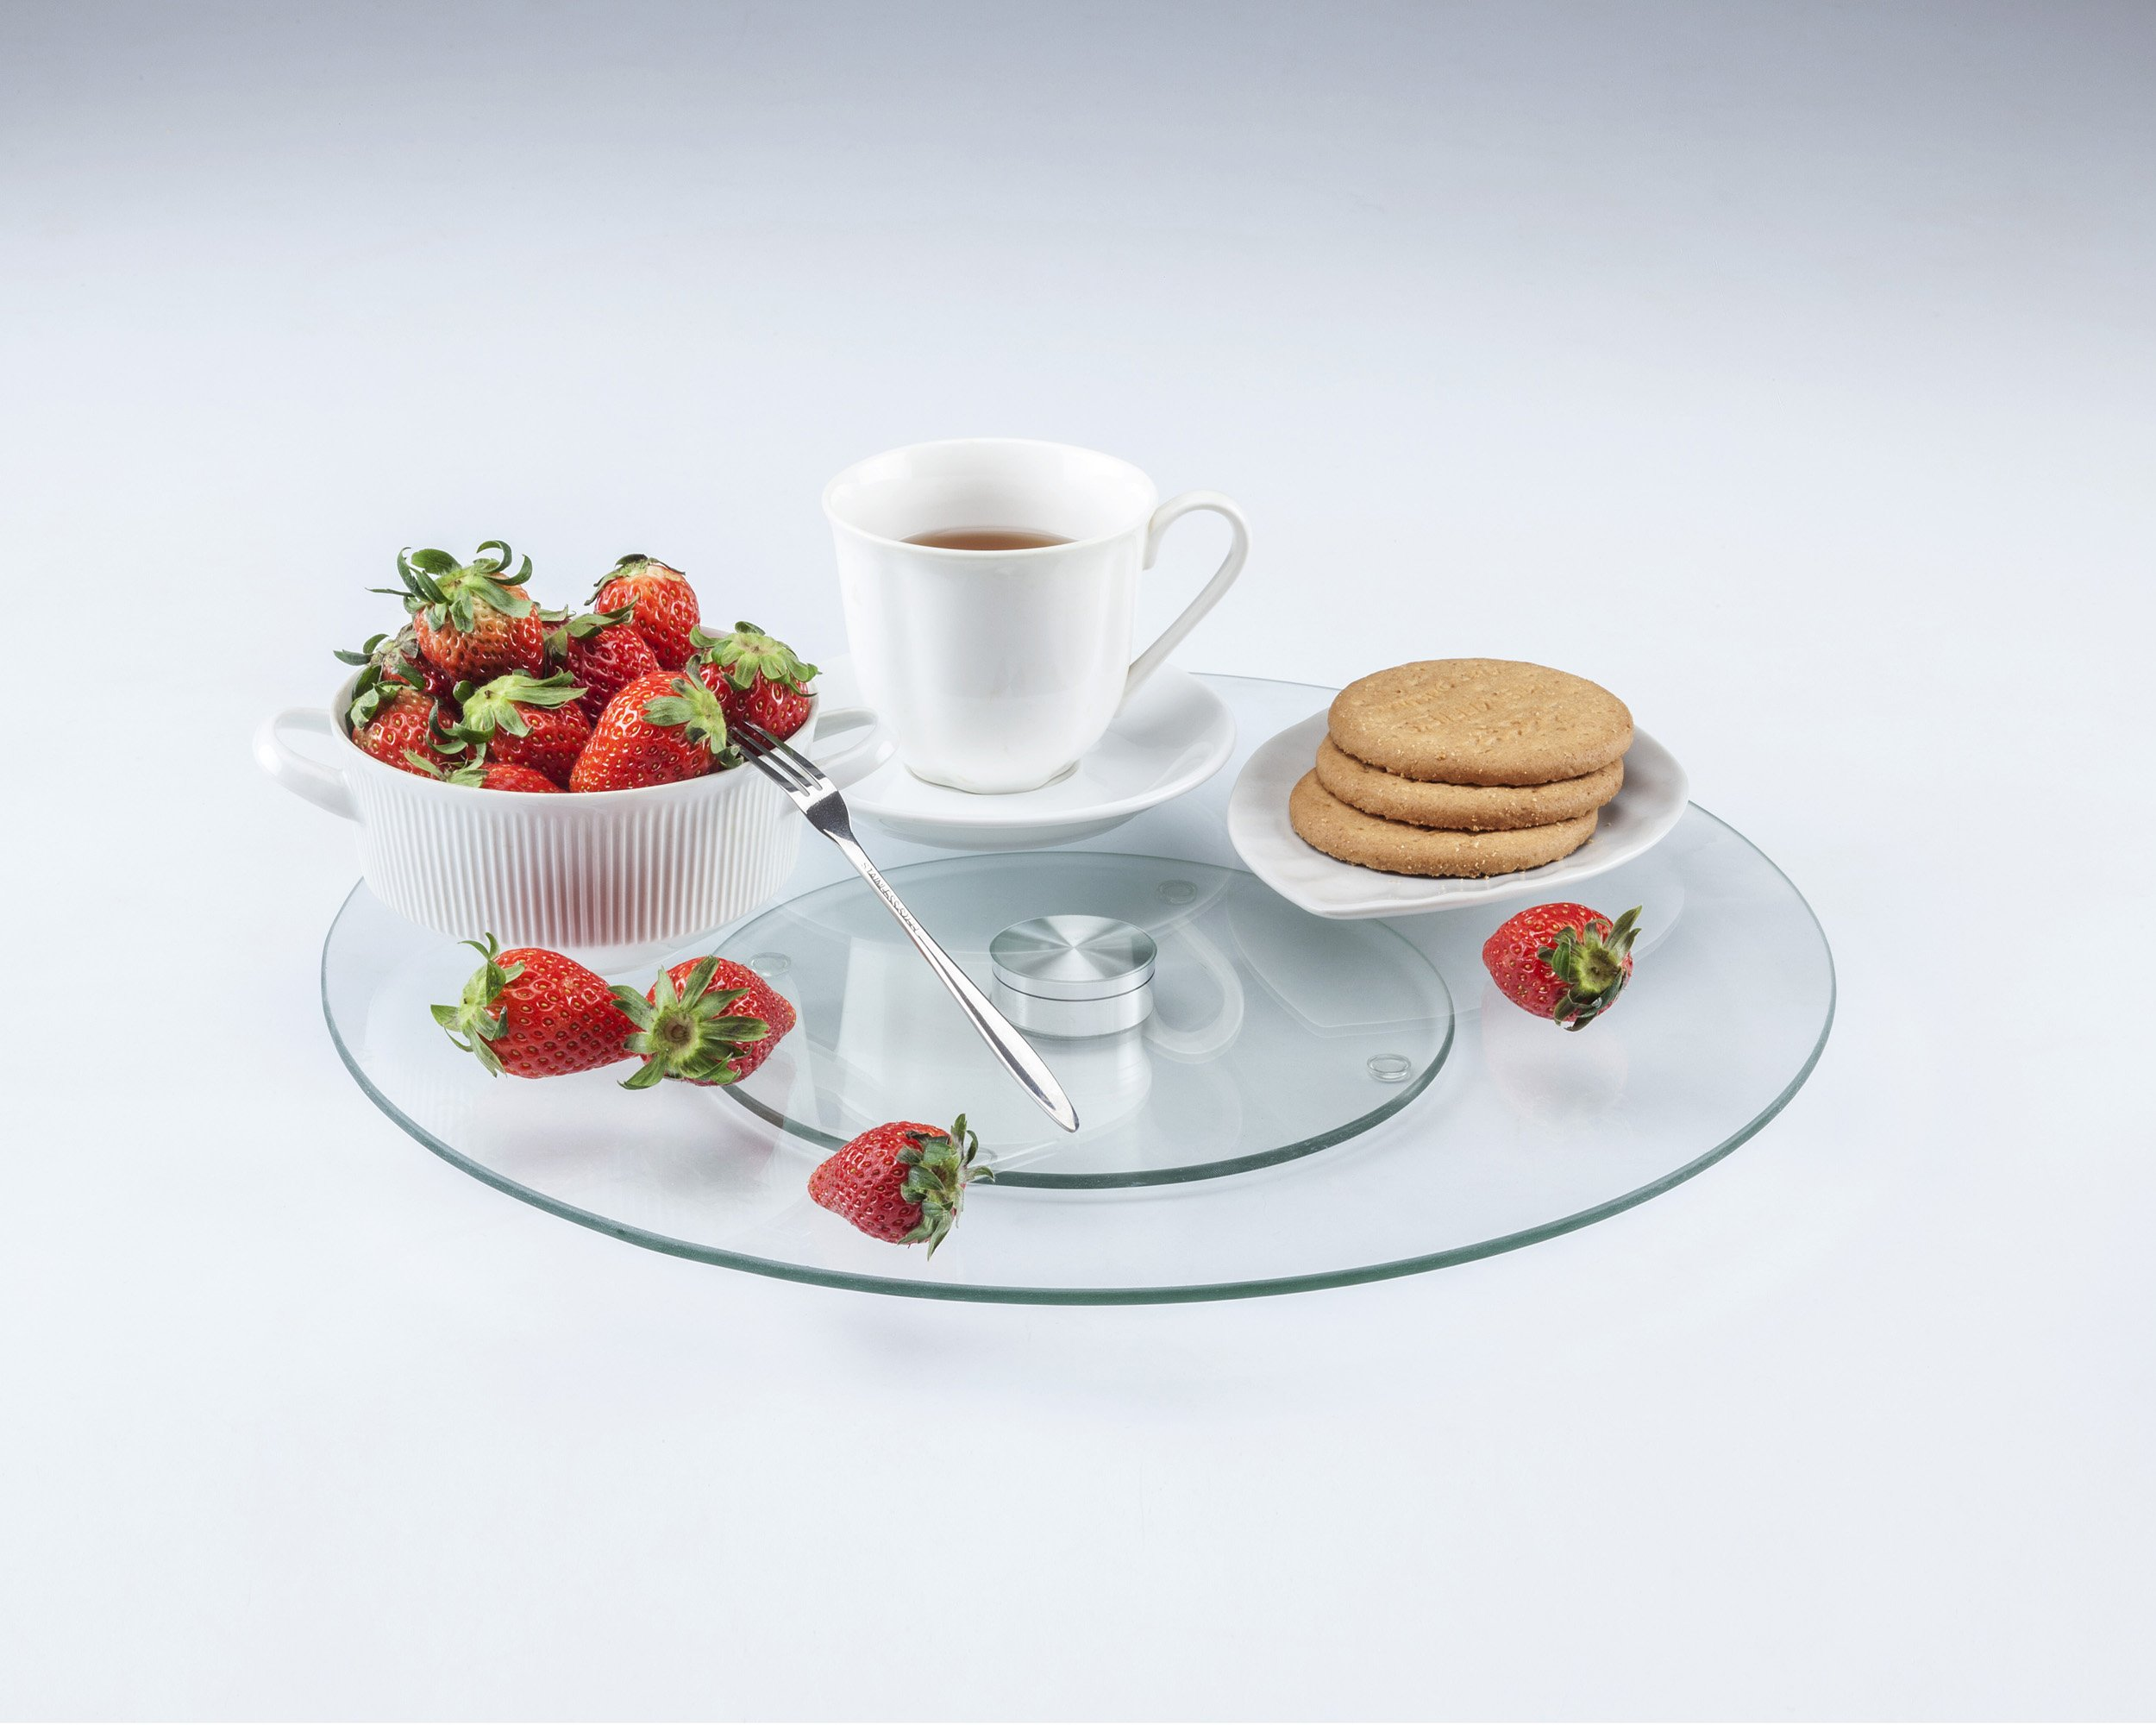 LANSH Tempered Glass 14 Inch Lazy Susan and Rotating Tray for Cabinet organization and Cheese Tray